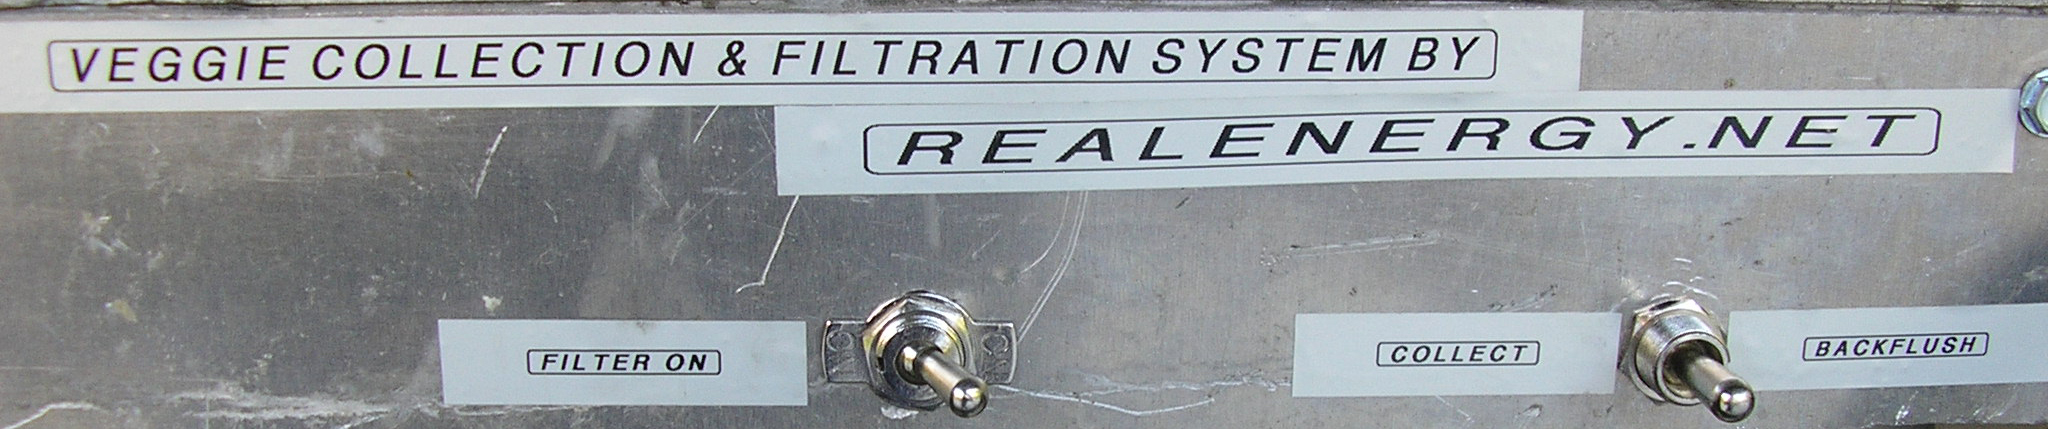 Collection System Panel